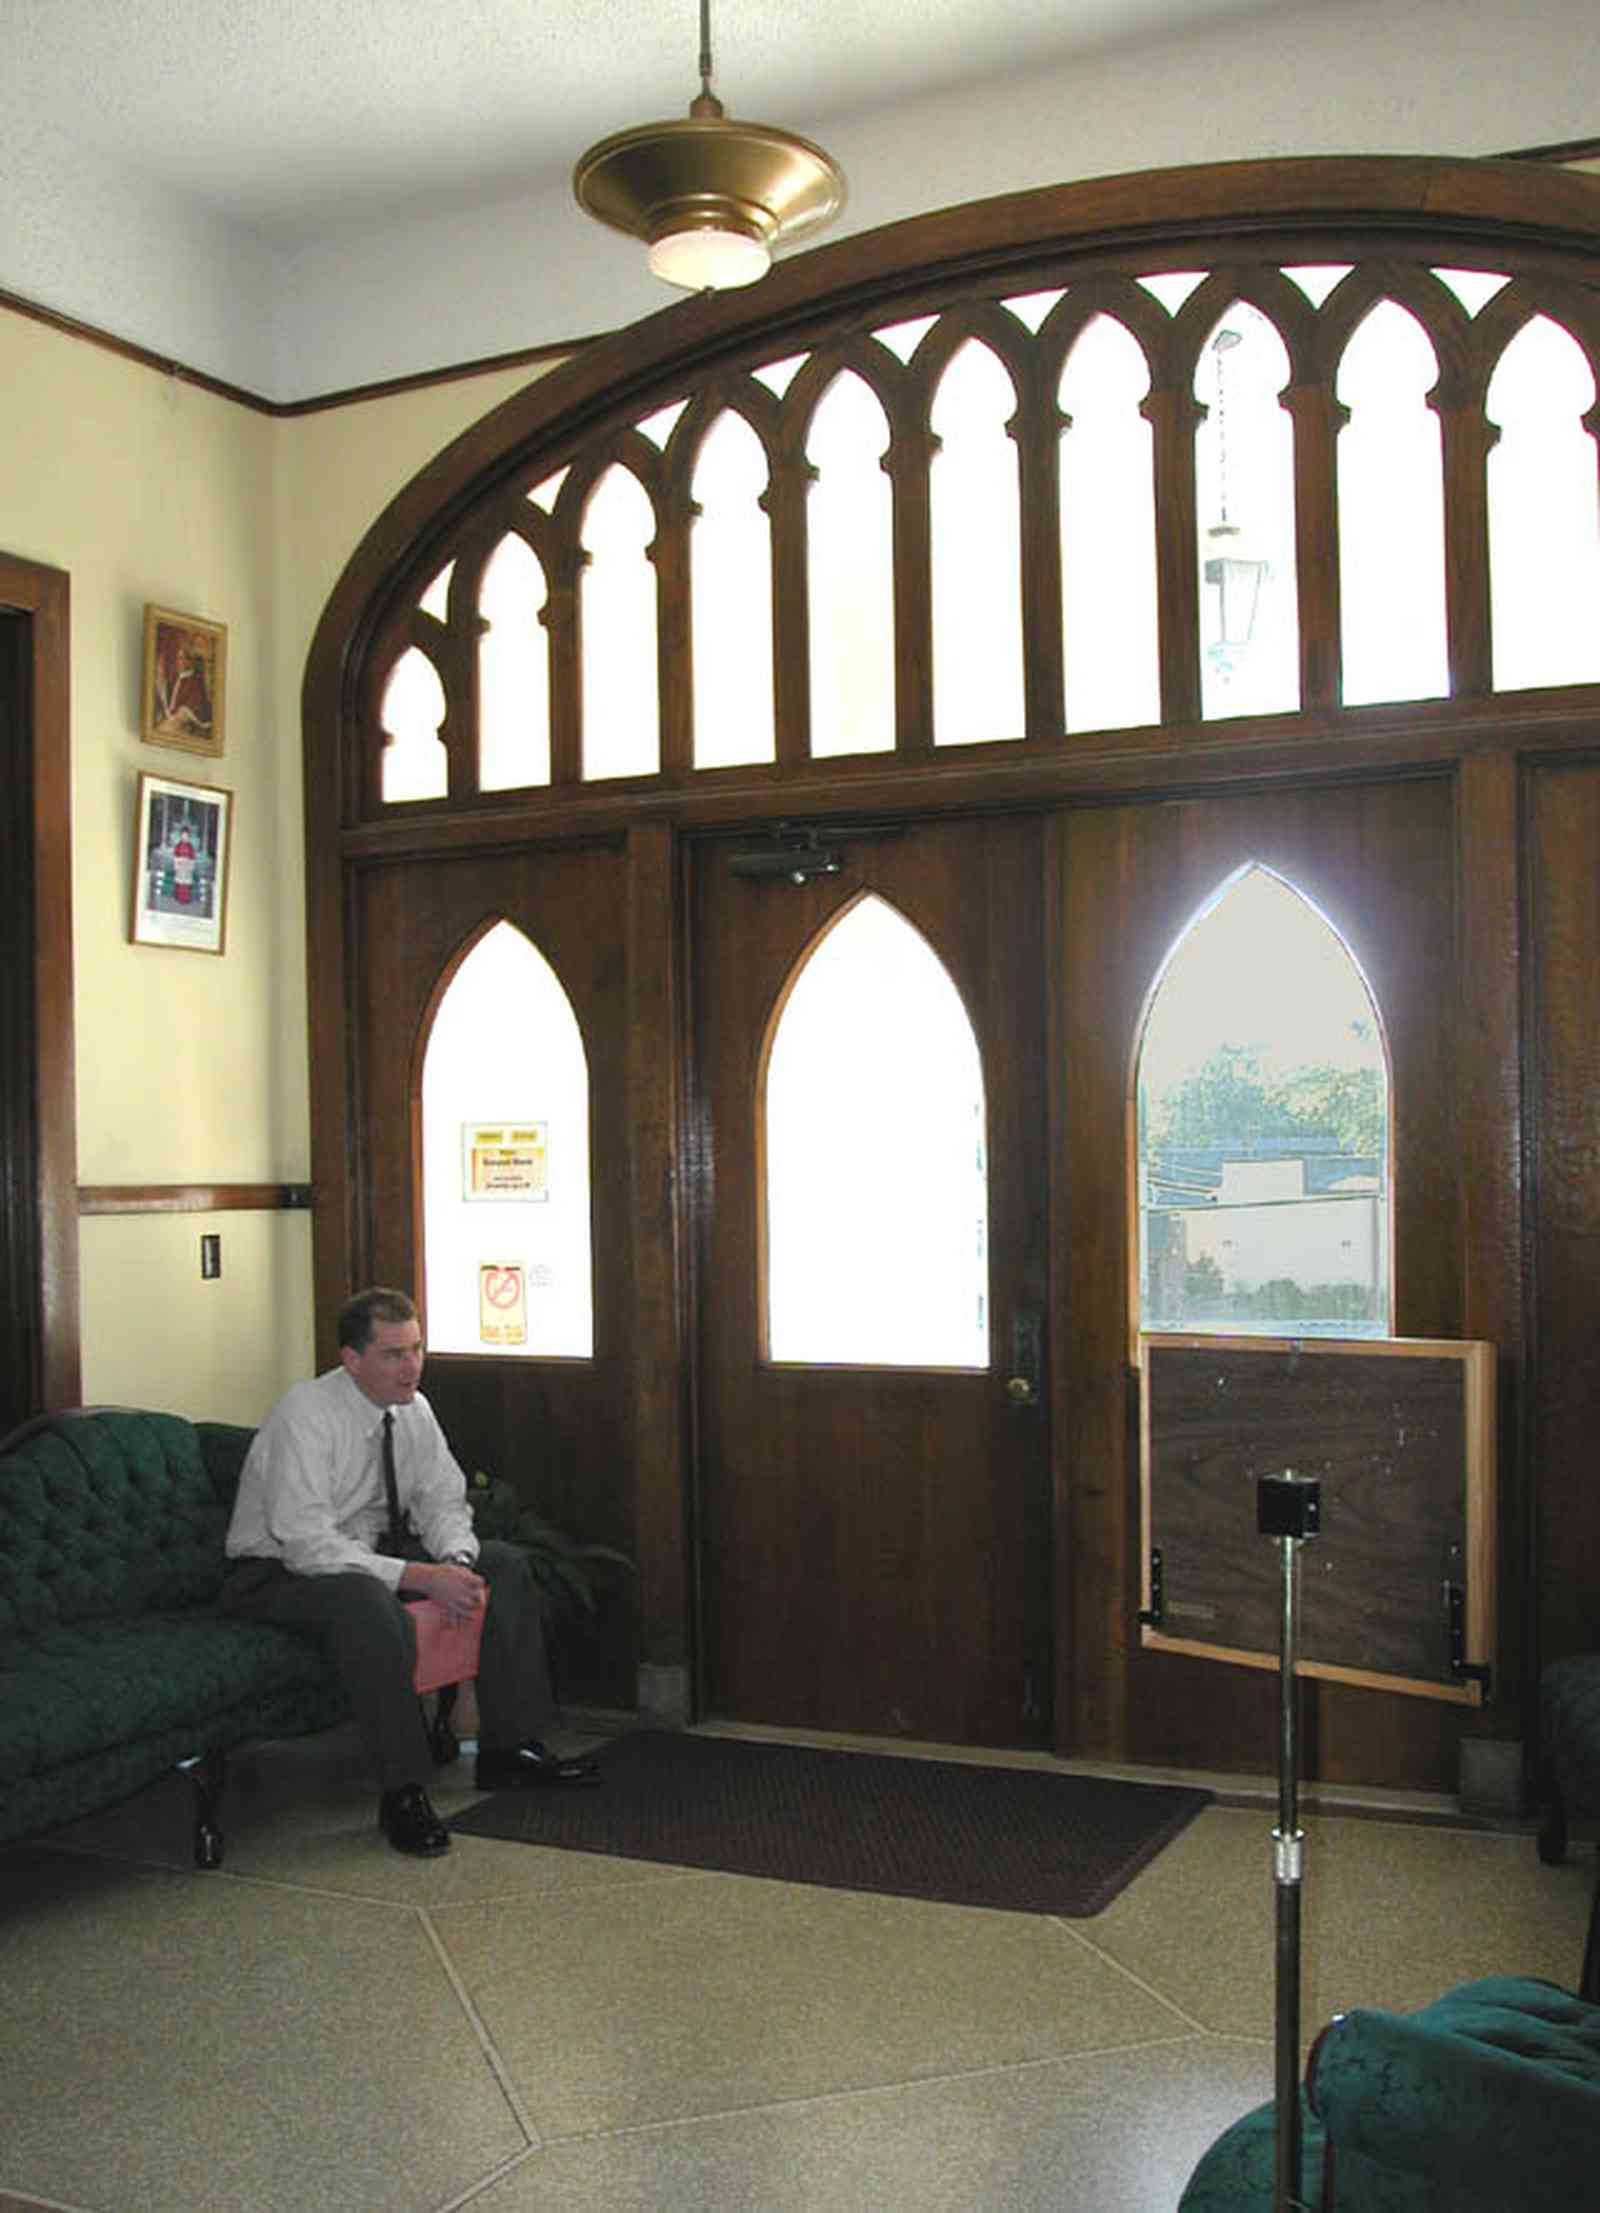 East-Hill:-Tower-East:-Old-Sacred-Heart-Hospital_35a.jpg:  front door, reception area, sofa, granite floor, clestory tracery, gothic revivial architectural style, beveled glass window